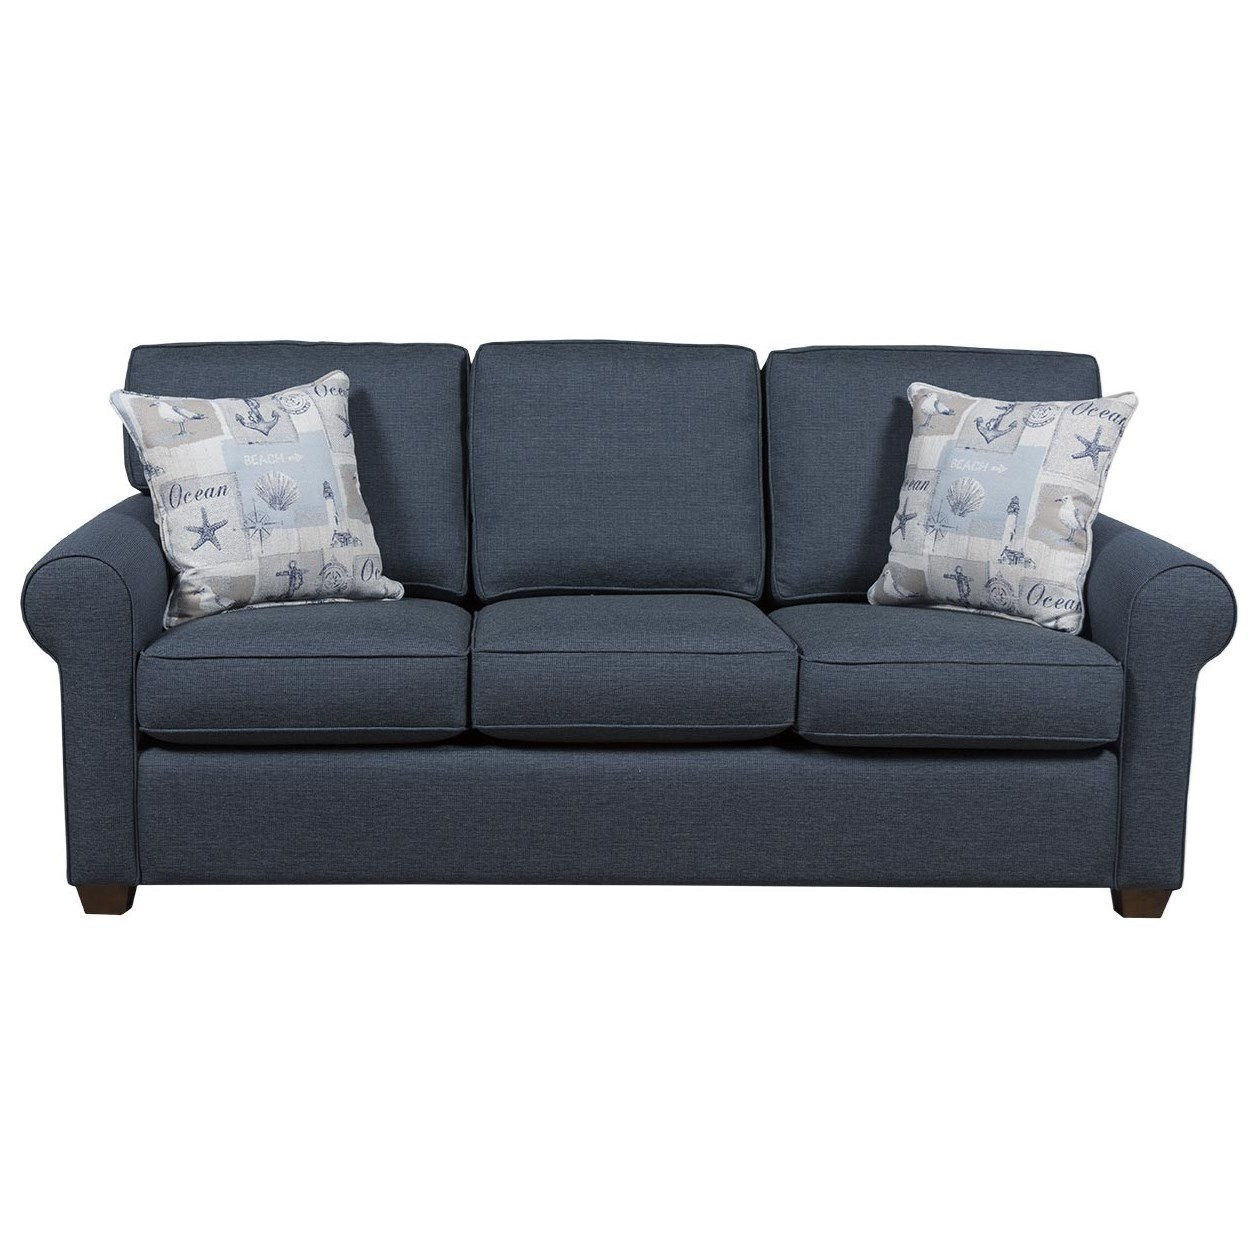 Capris Furniture 912 Casual Queen Size Sleeper Sofa Rooms For Less